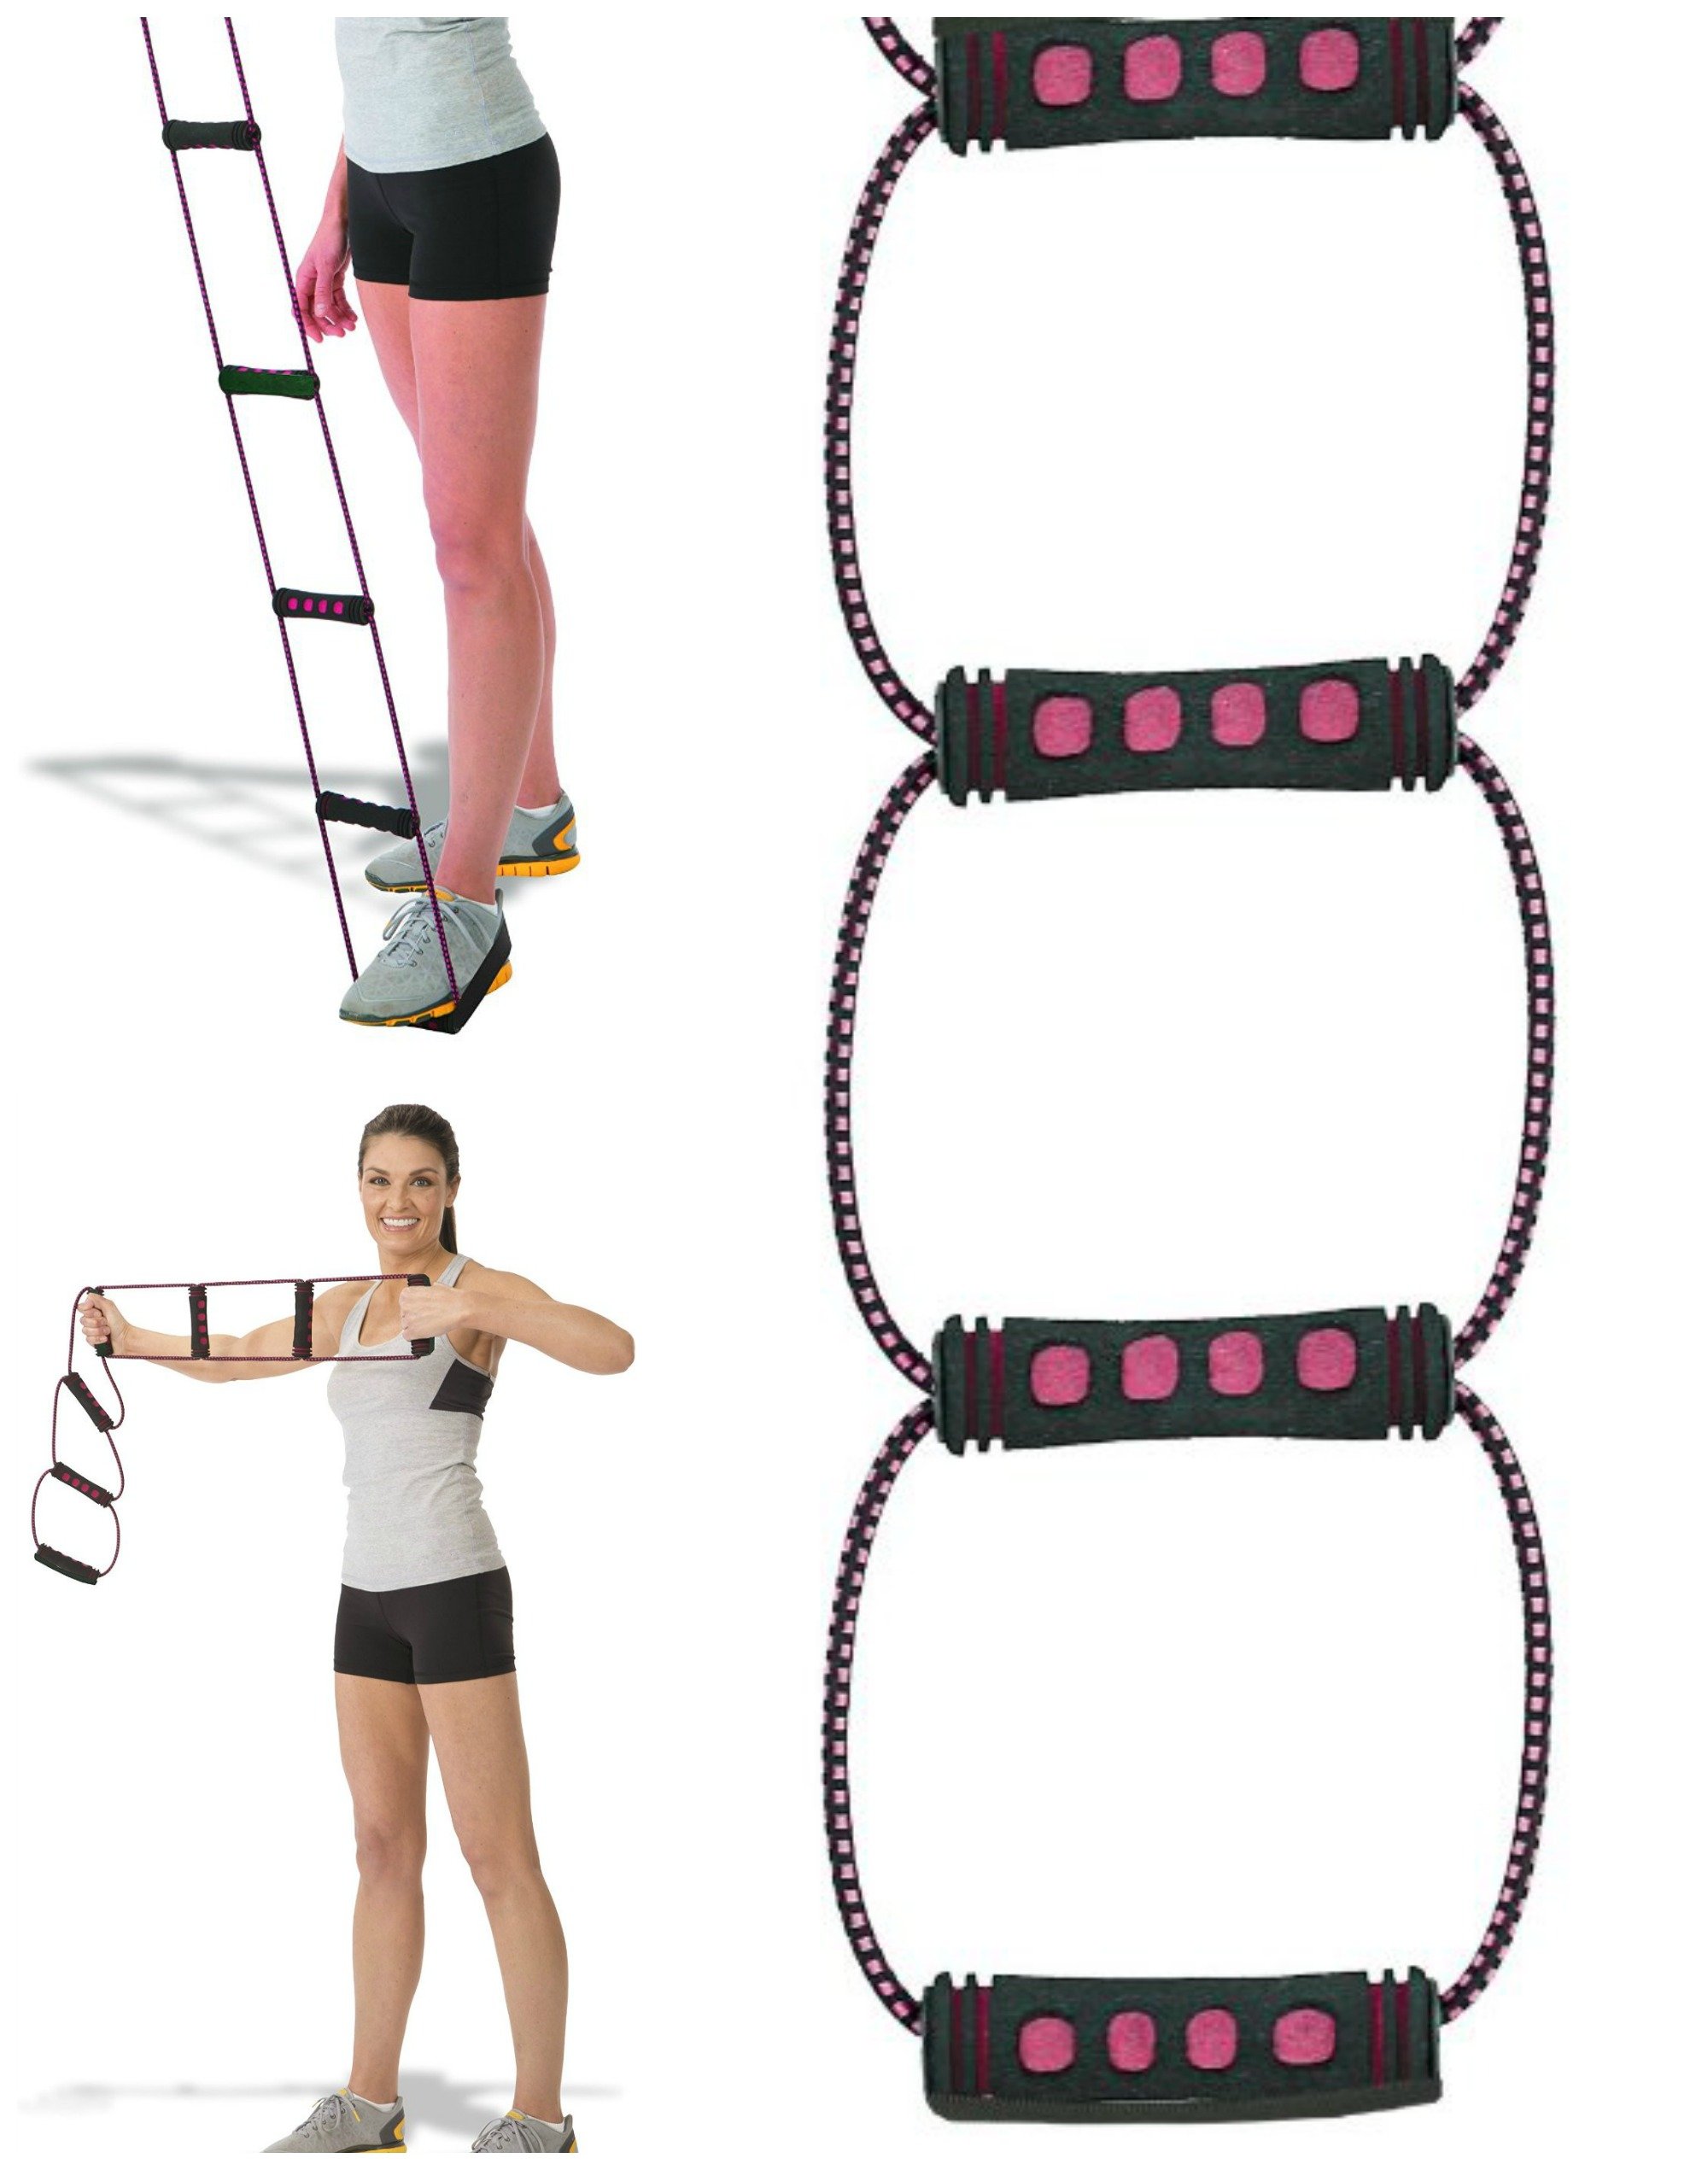 Flex Links- Get up to 20 lbs. of resistance weight with one tool. #ad